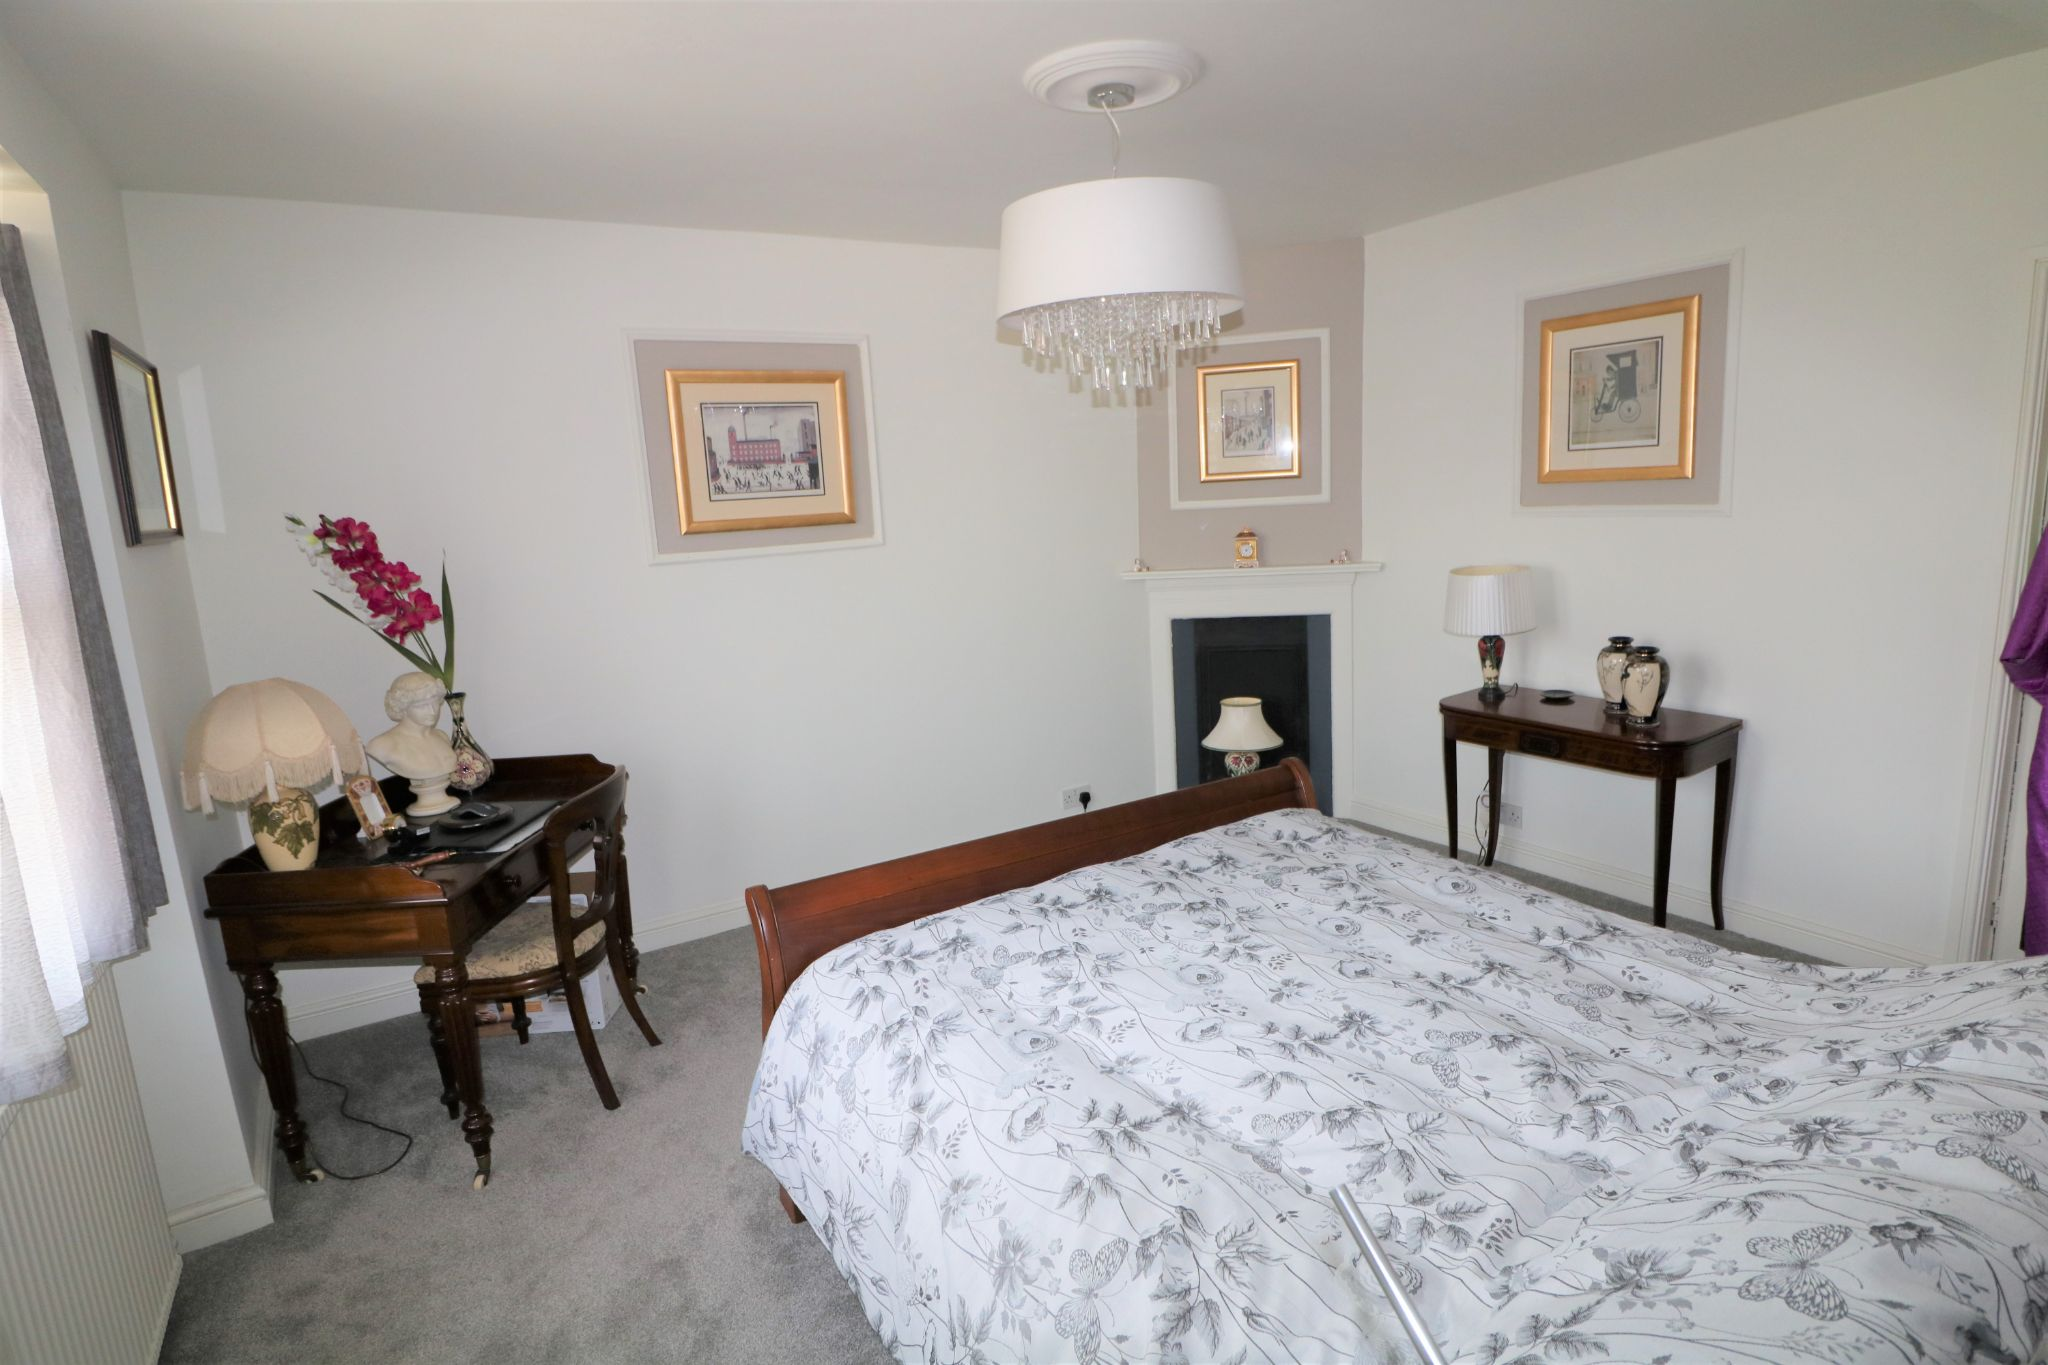 6 Bedroom Semi-detached House For Sale - Photograph 16